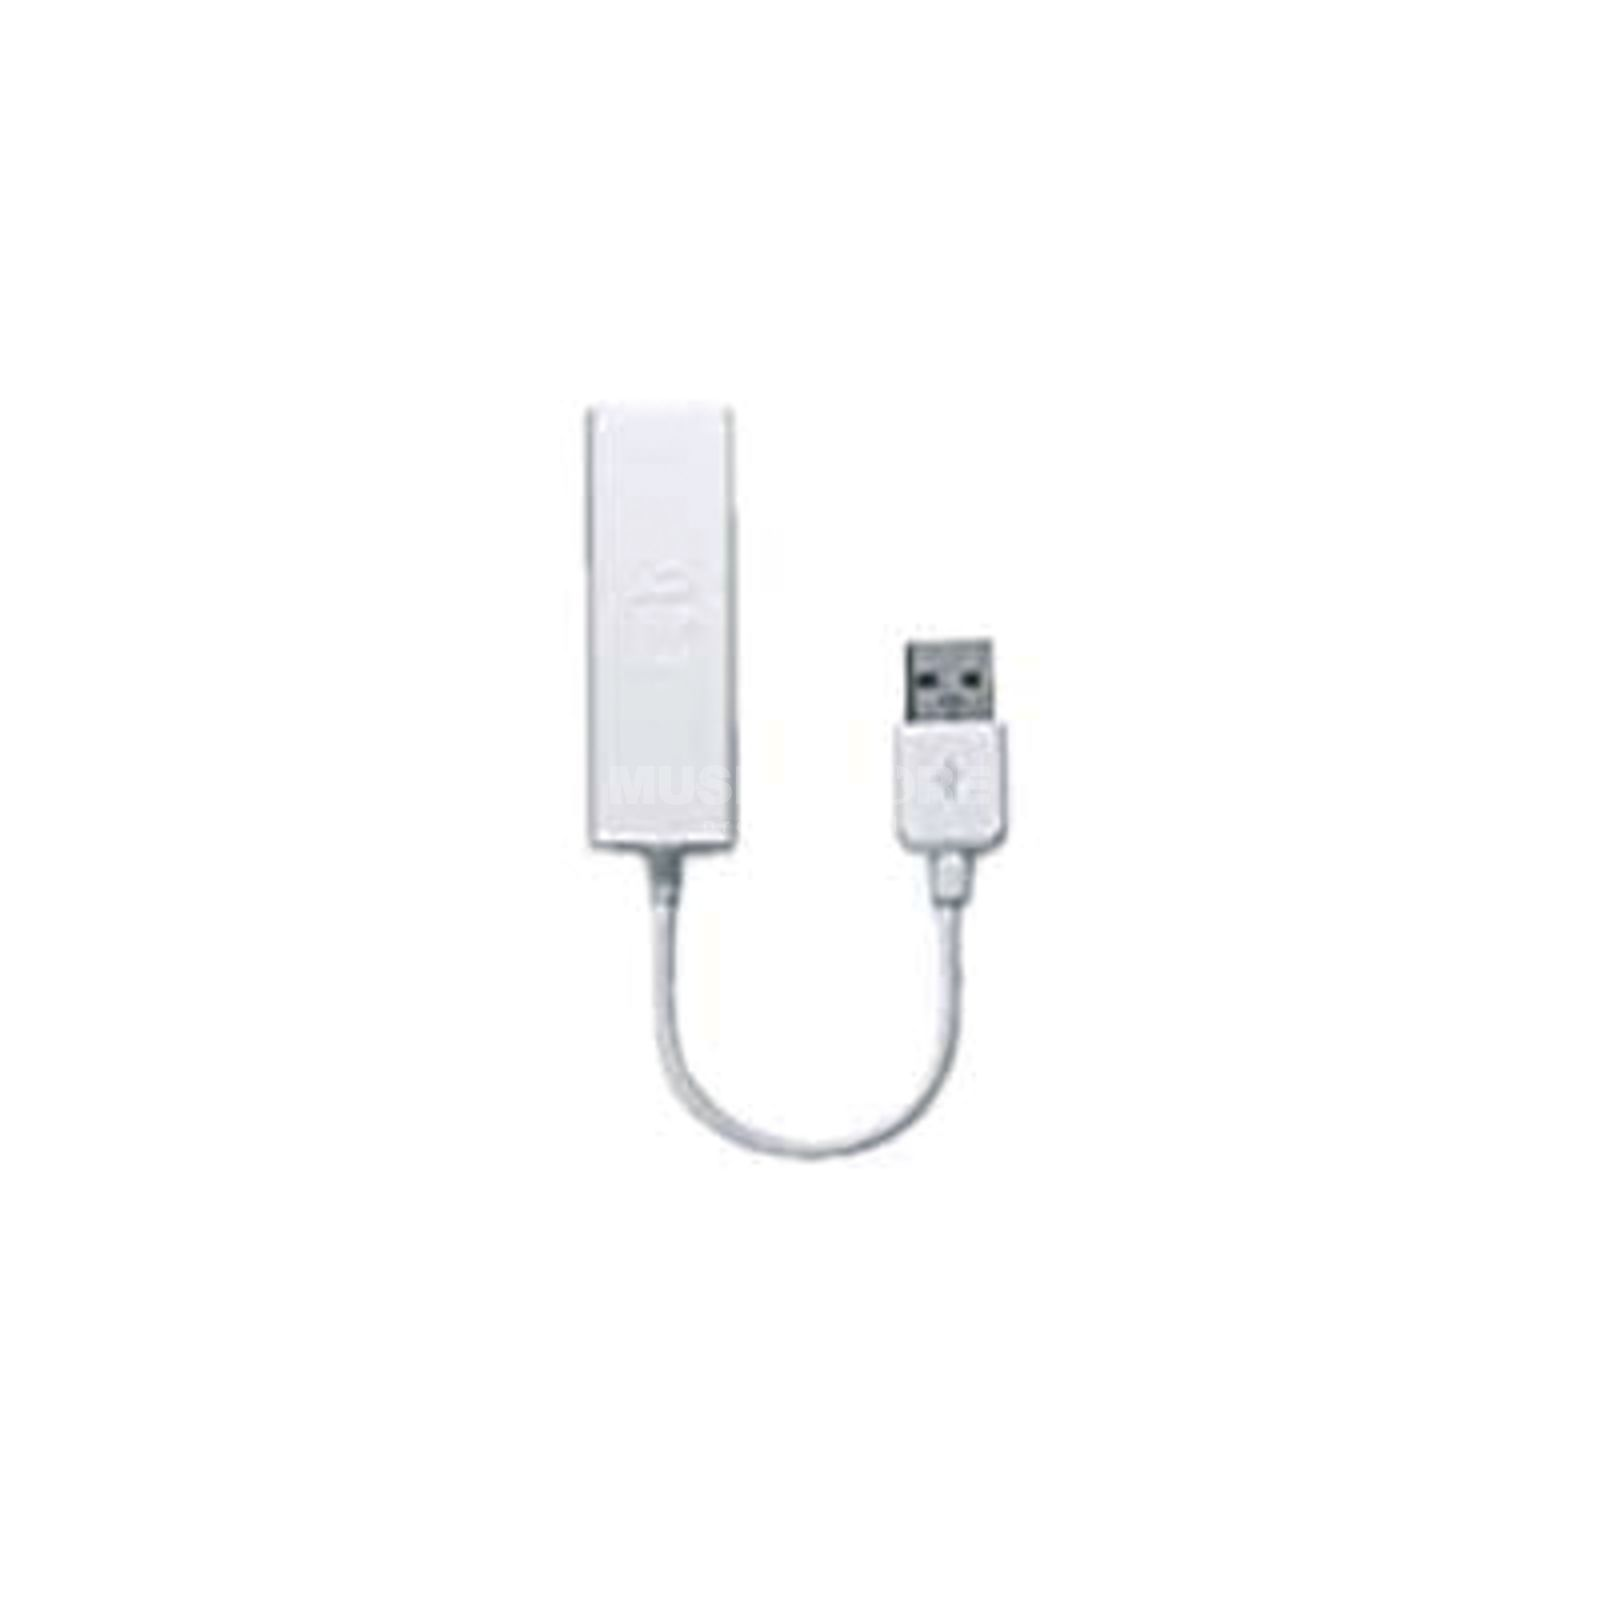 Apple USB Ethernet Adapter for MacBook Air Produktbillede